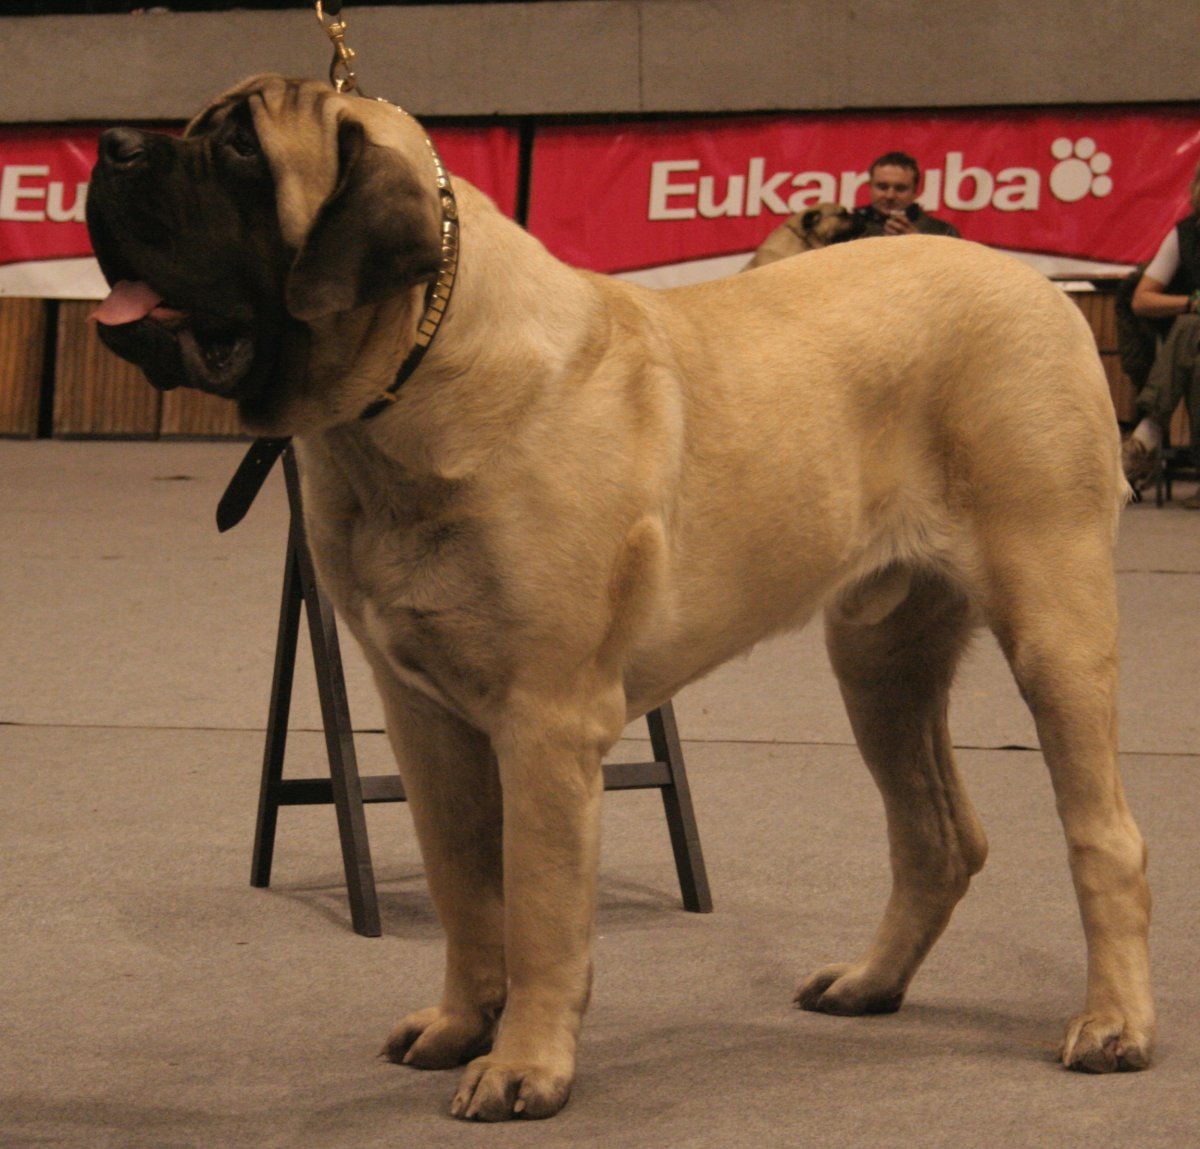 An English Mastiff. These dogs have massive bodies but are good-natured and calm.